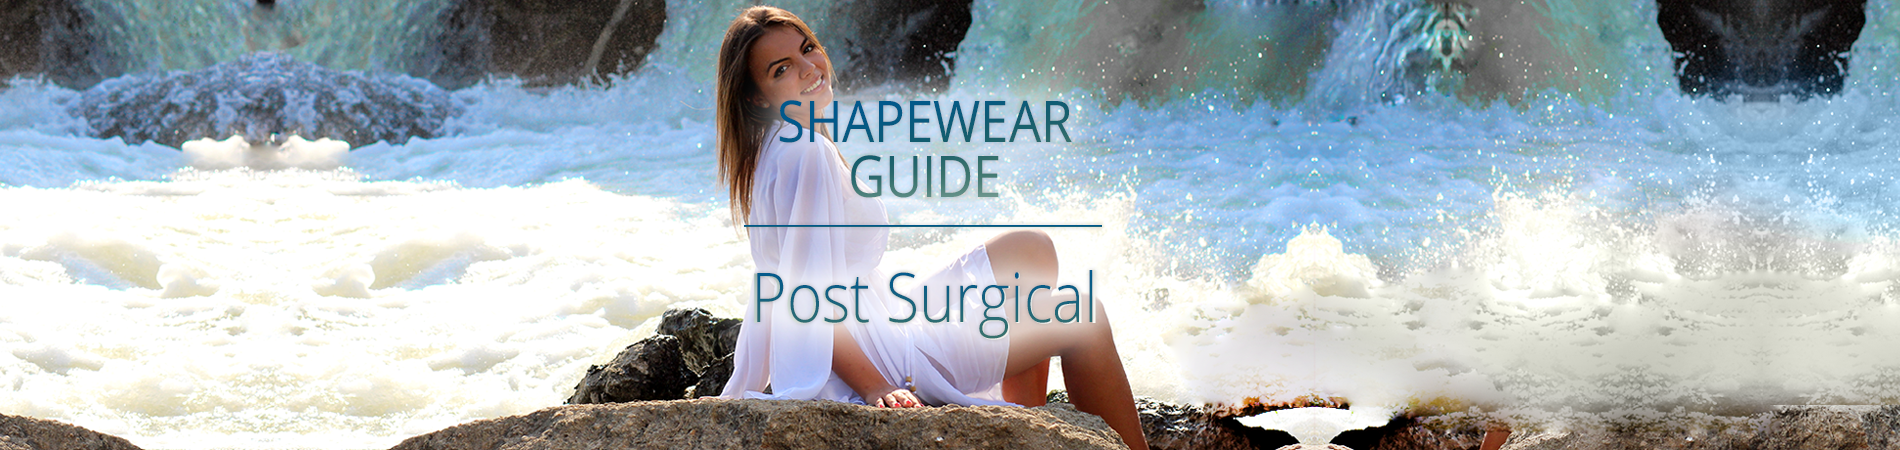 Post Surgical Shapewear Guide